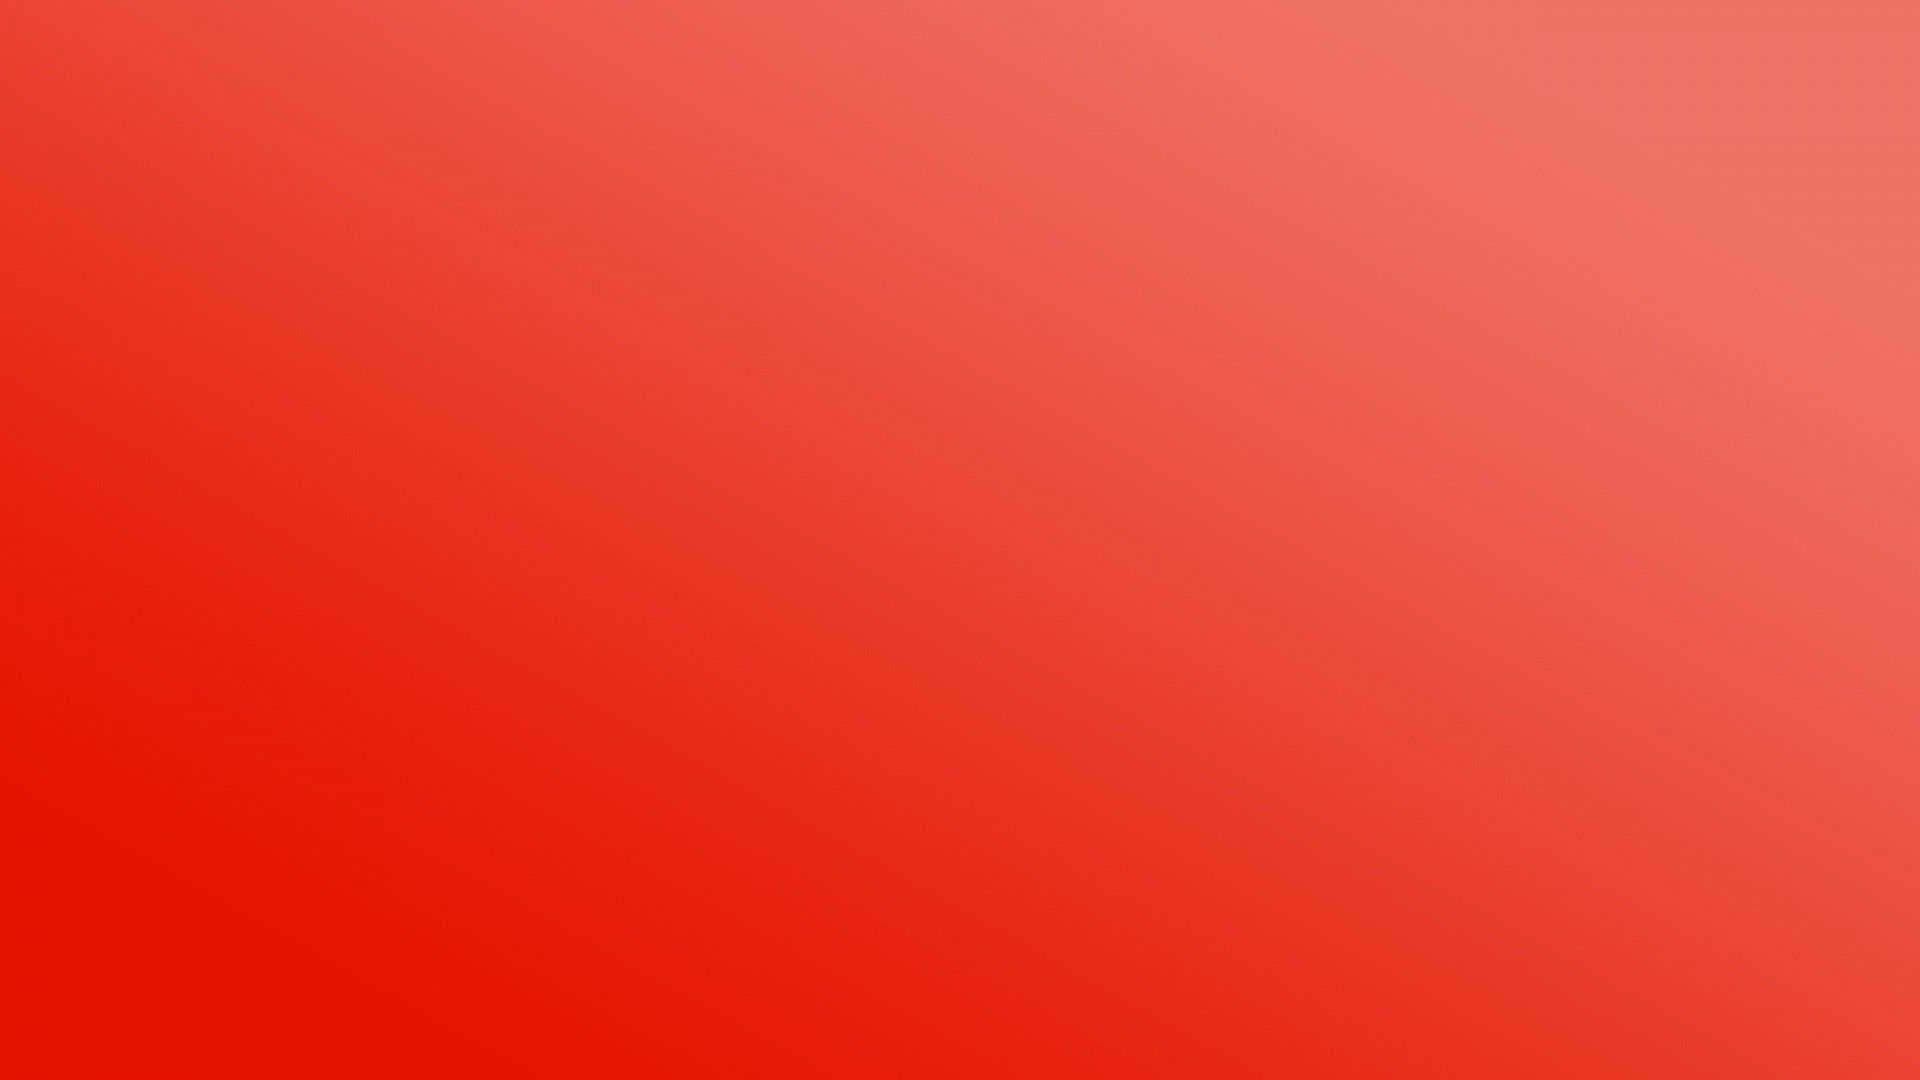 1920x1080 Solid Red Wallpaper (69+ images)